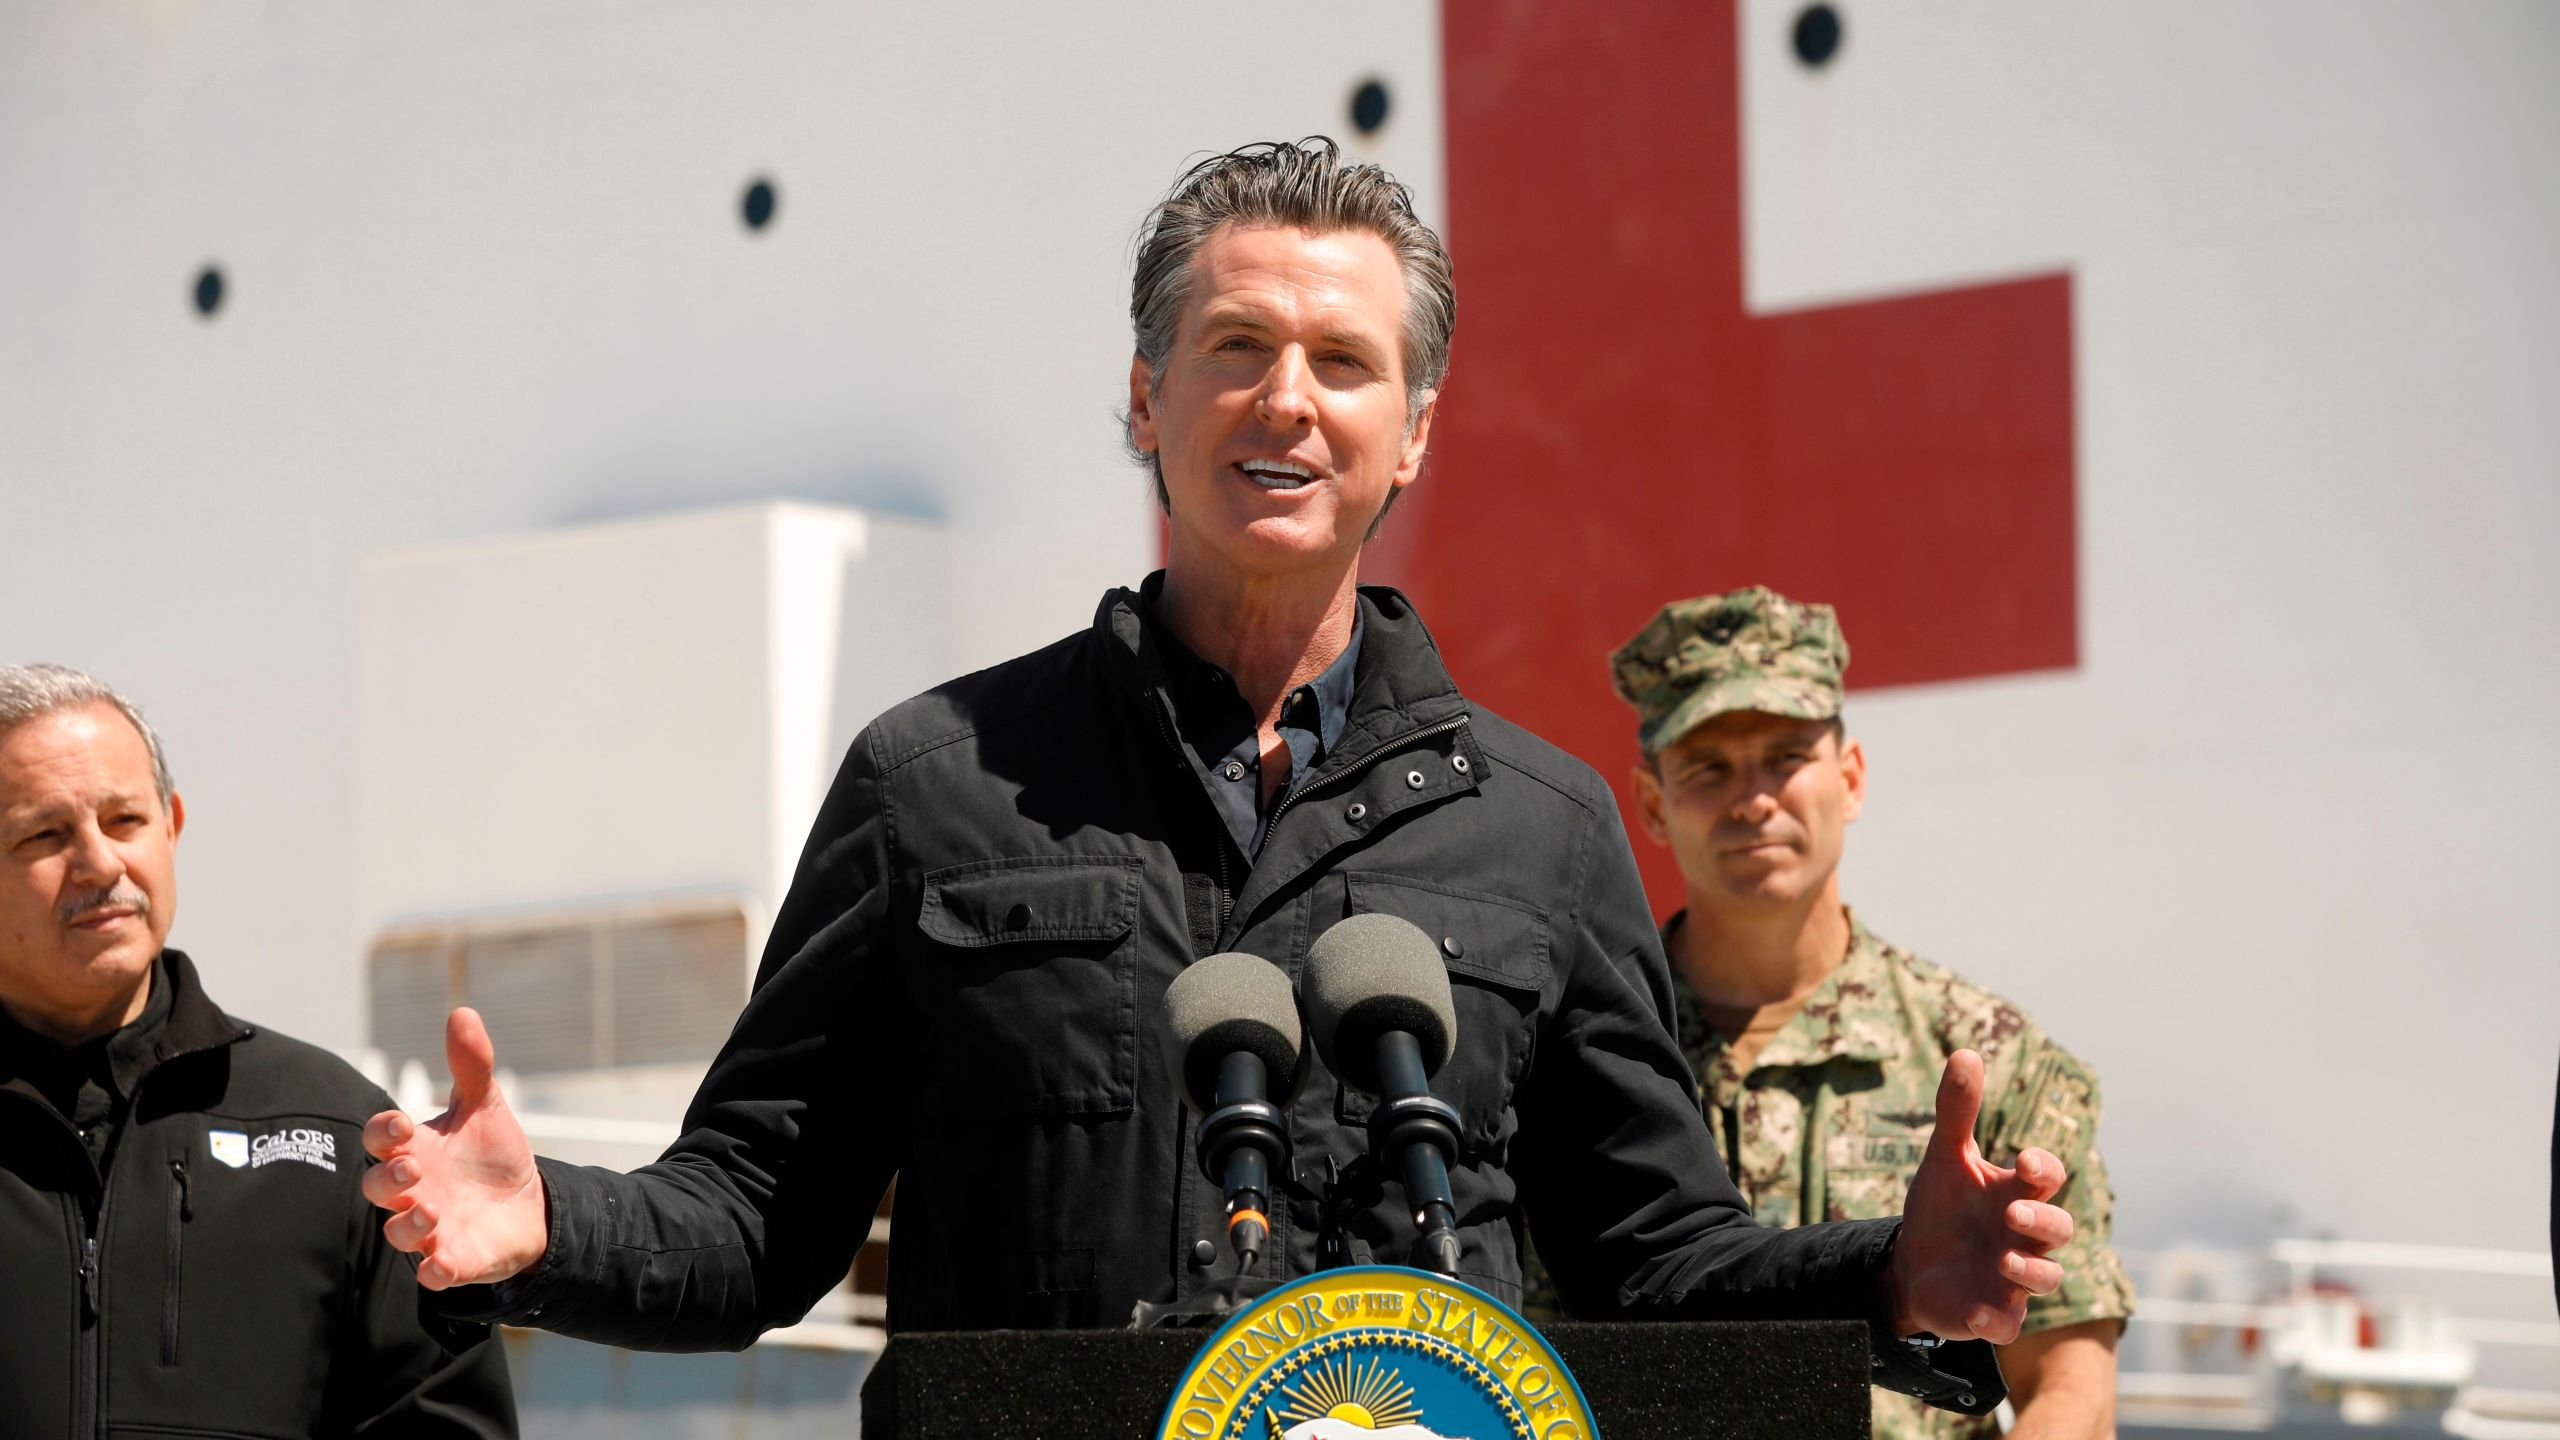 California Governor Gavin Newsom speaks in front of the hospital ship USNS Mercy after it arrived into the Port of Los Angeles on March 27, 2020.(Carolyn Cole/POOL/AFP via Getty Images)